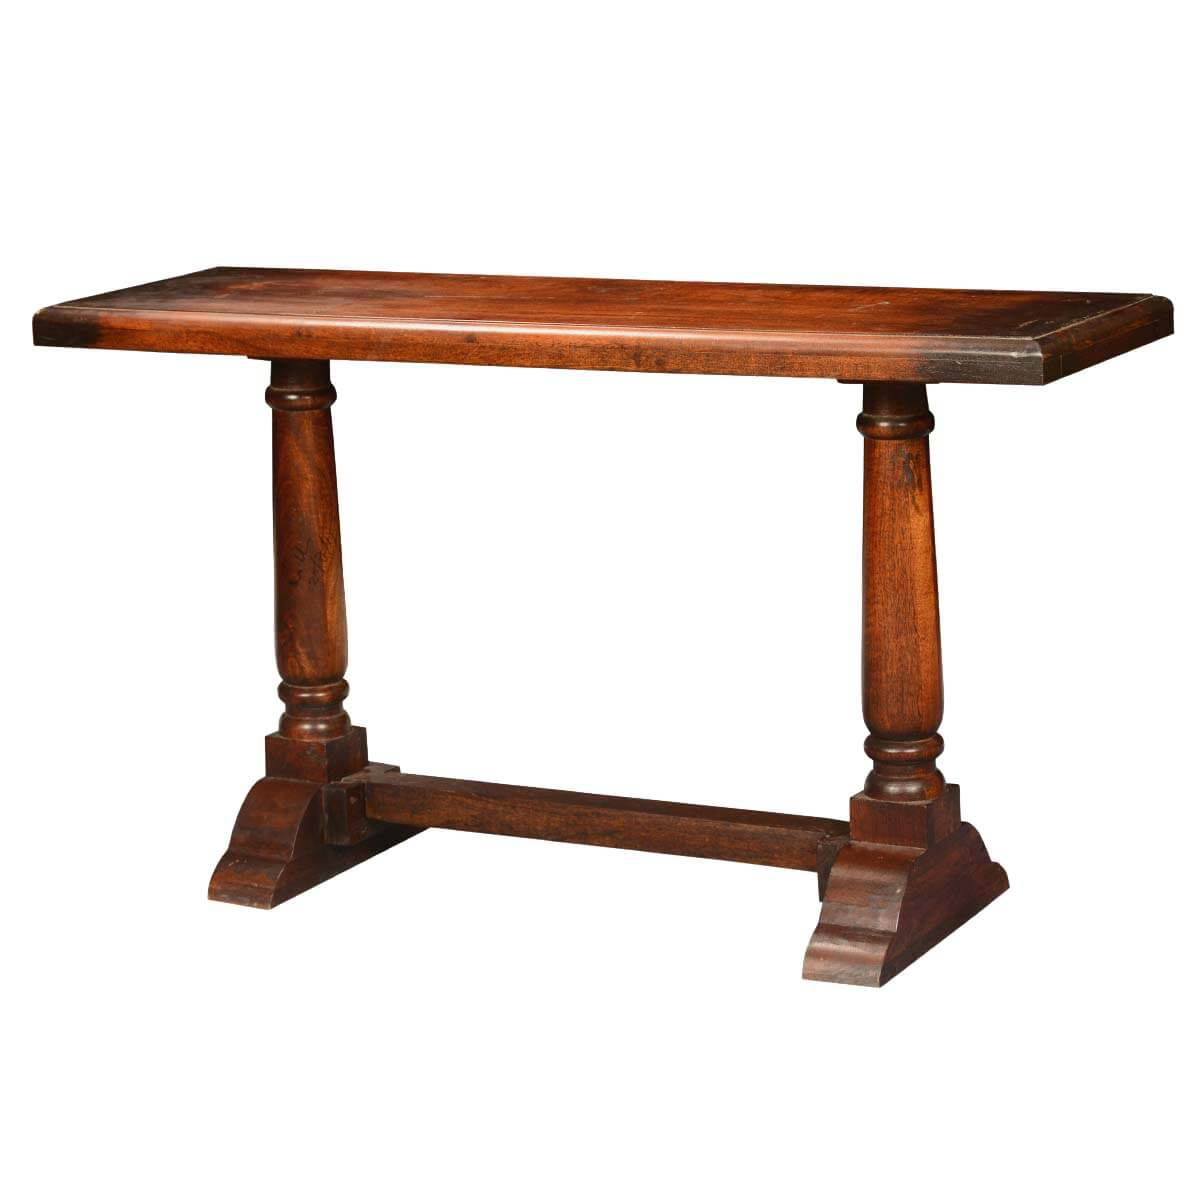 empire acacia wood trestle double pedestal console hall table. Black Bedroom Furniture Sets. Home Design Ideas